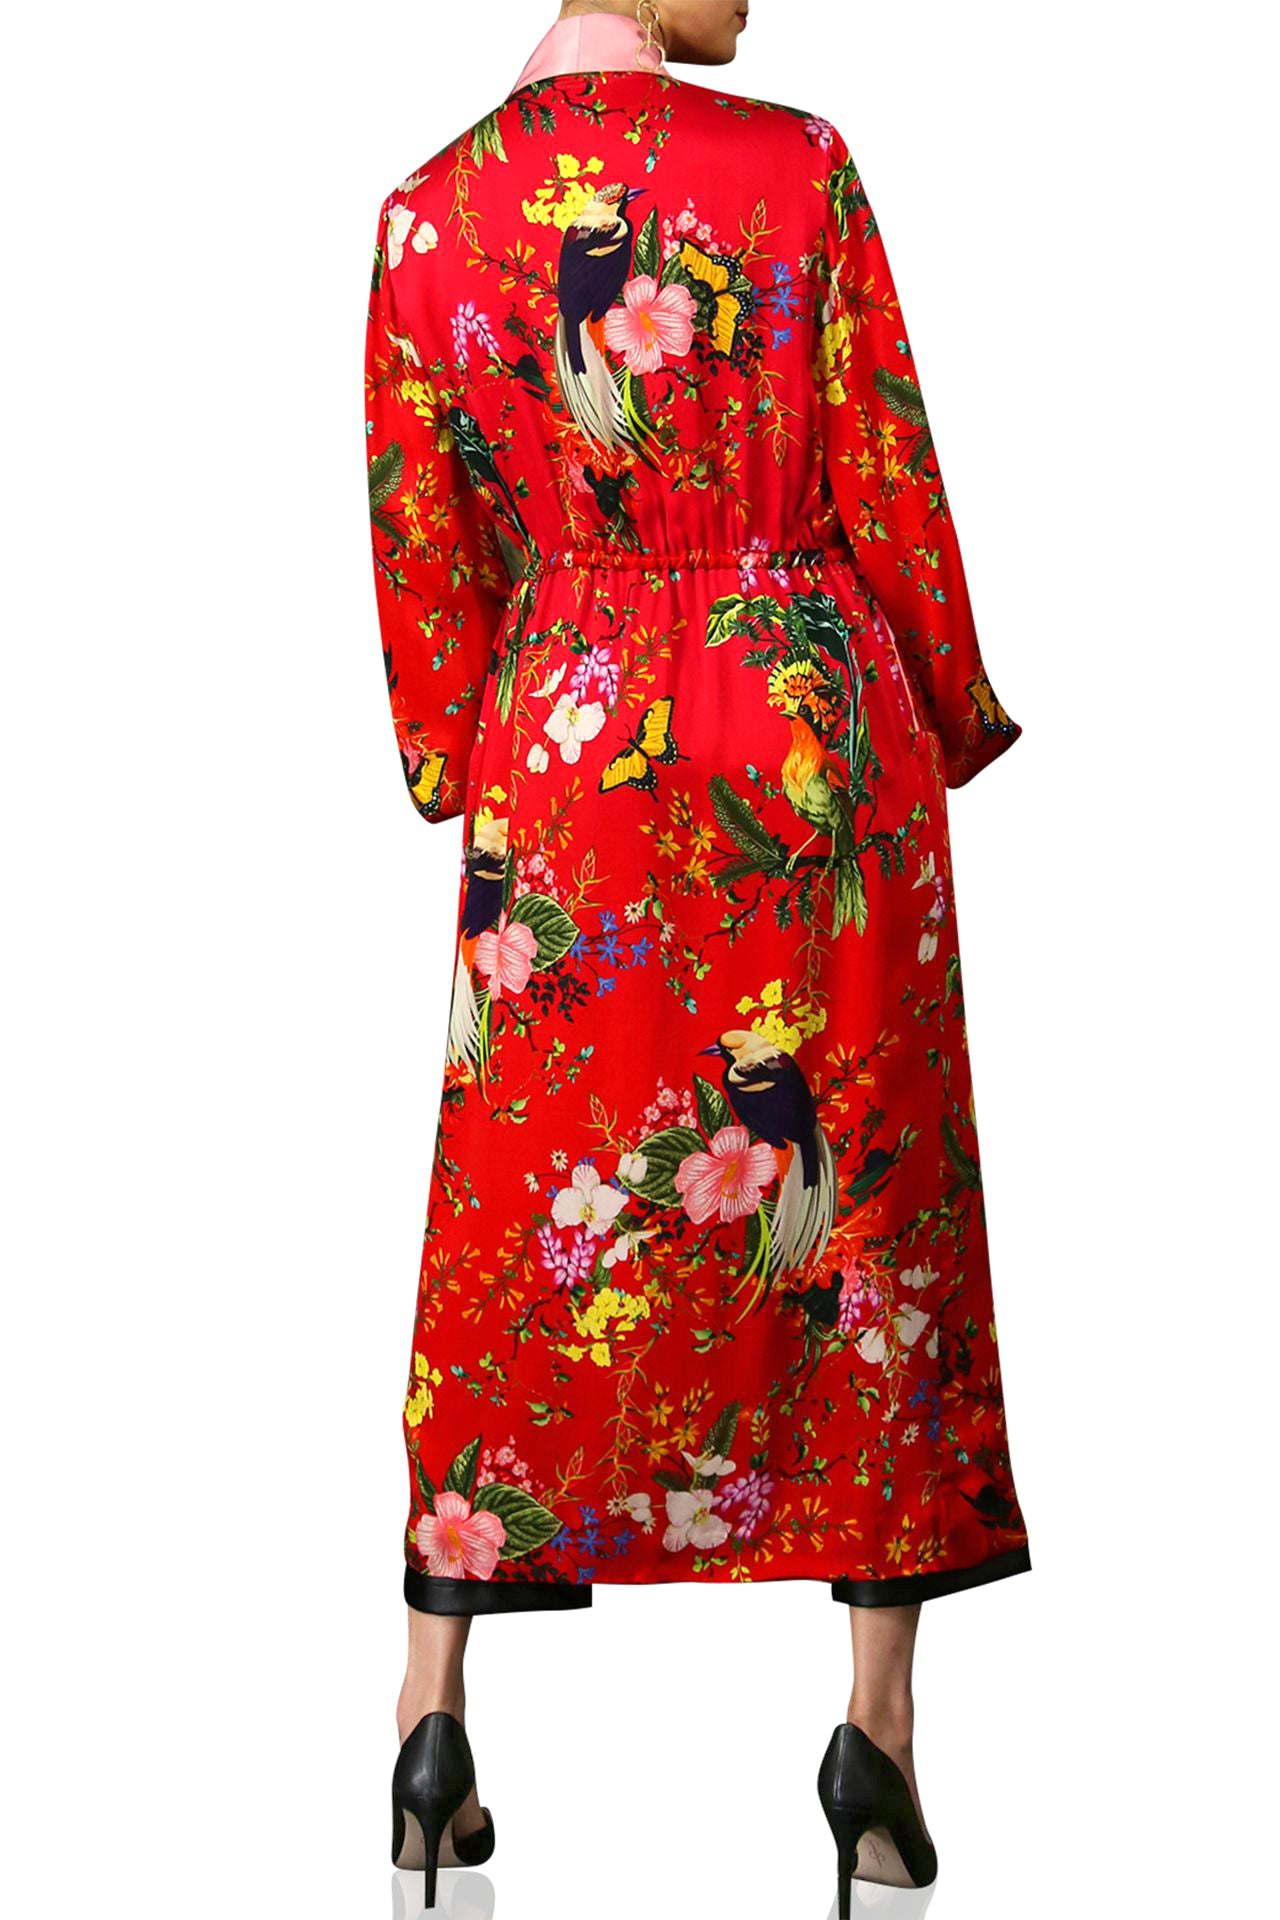 Floral-Print-Designer-Robe-Dress-From-Kyle-Richards